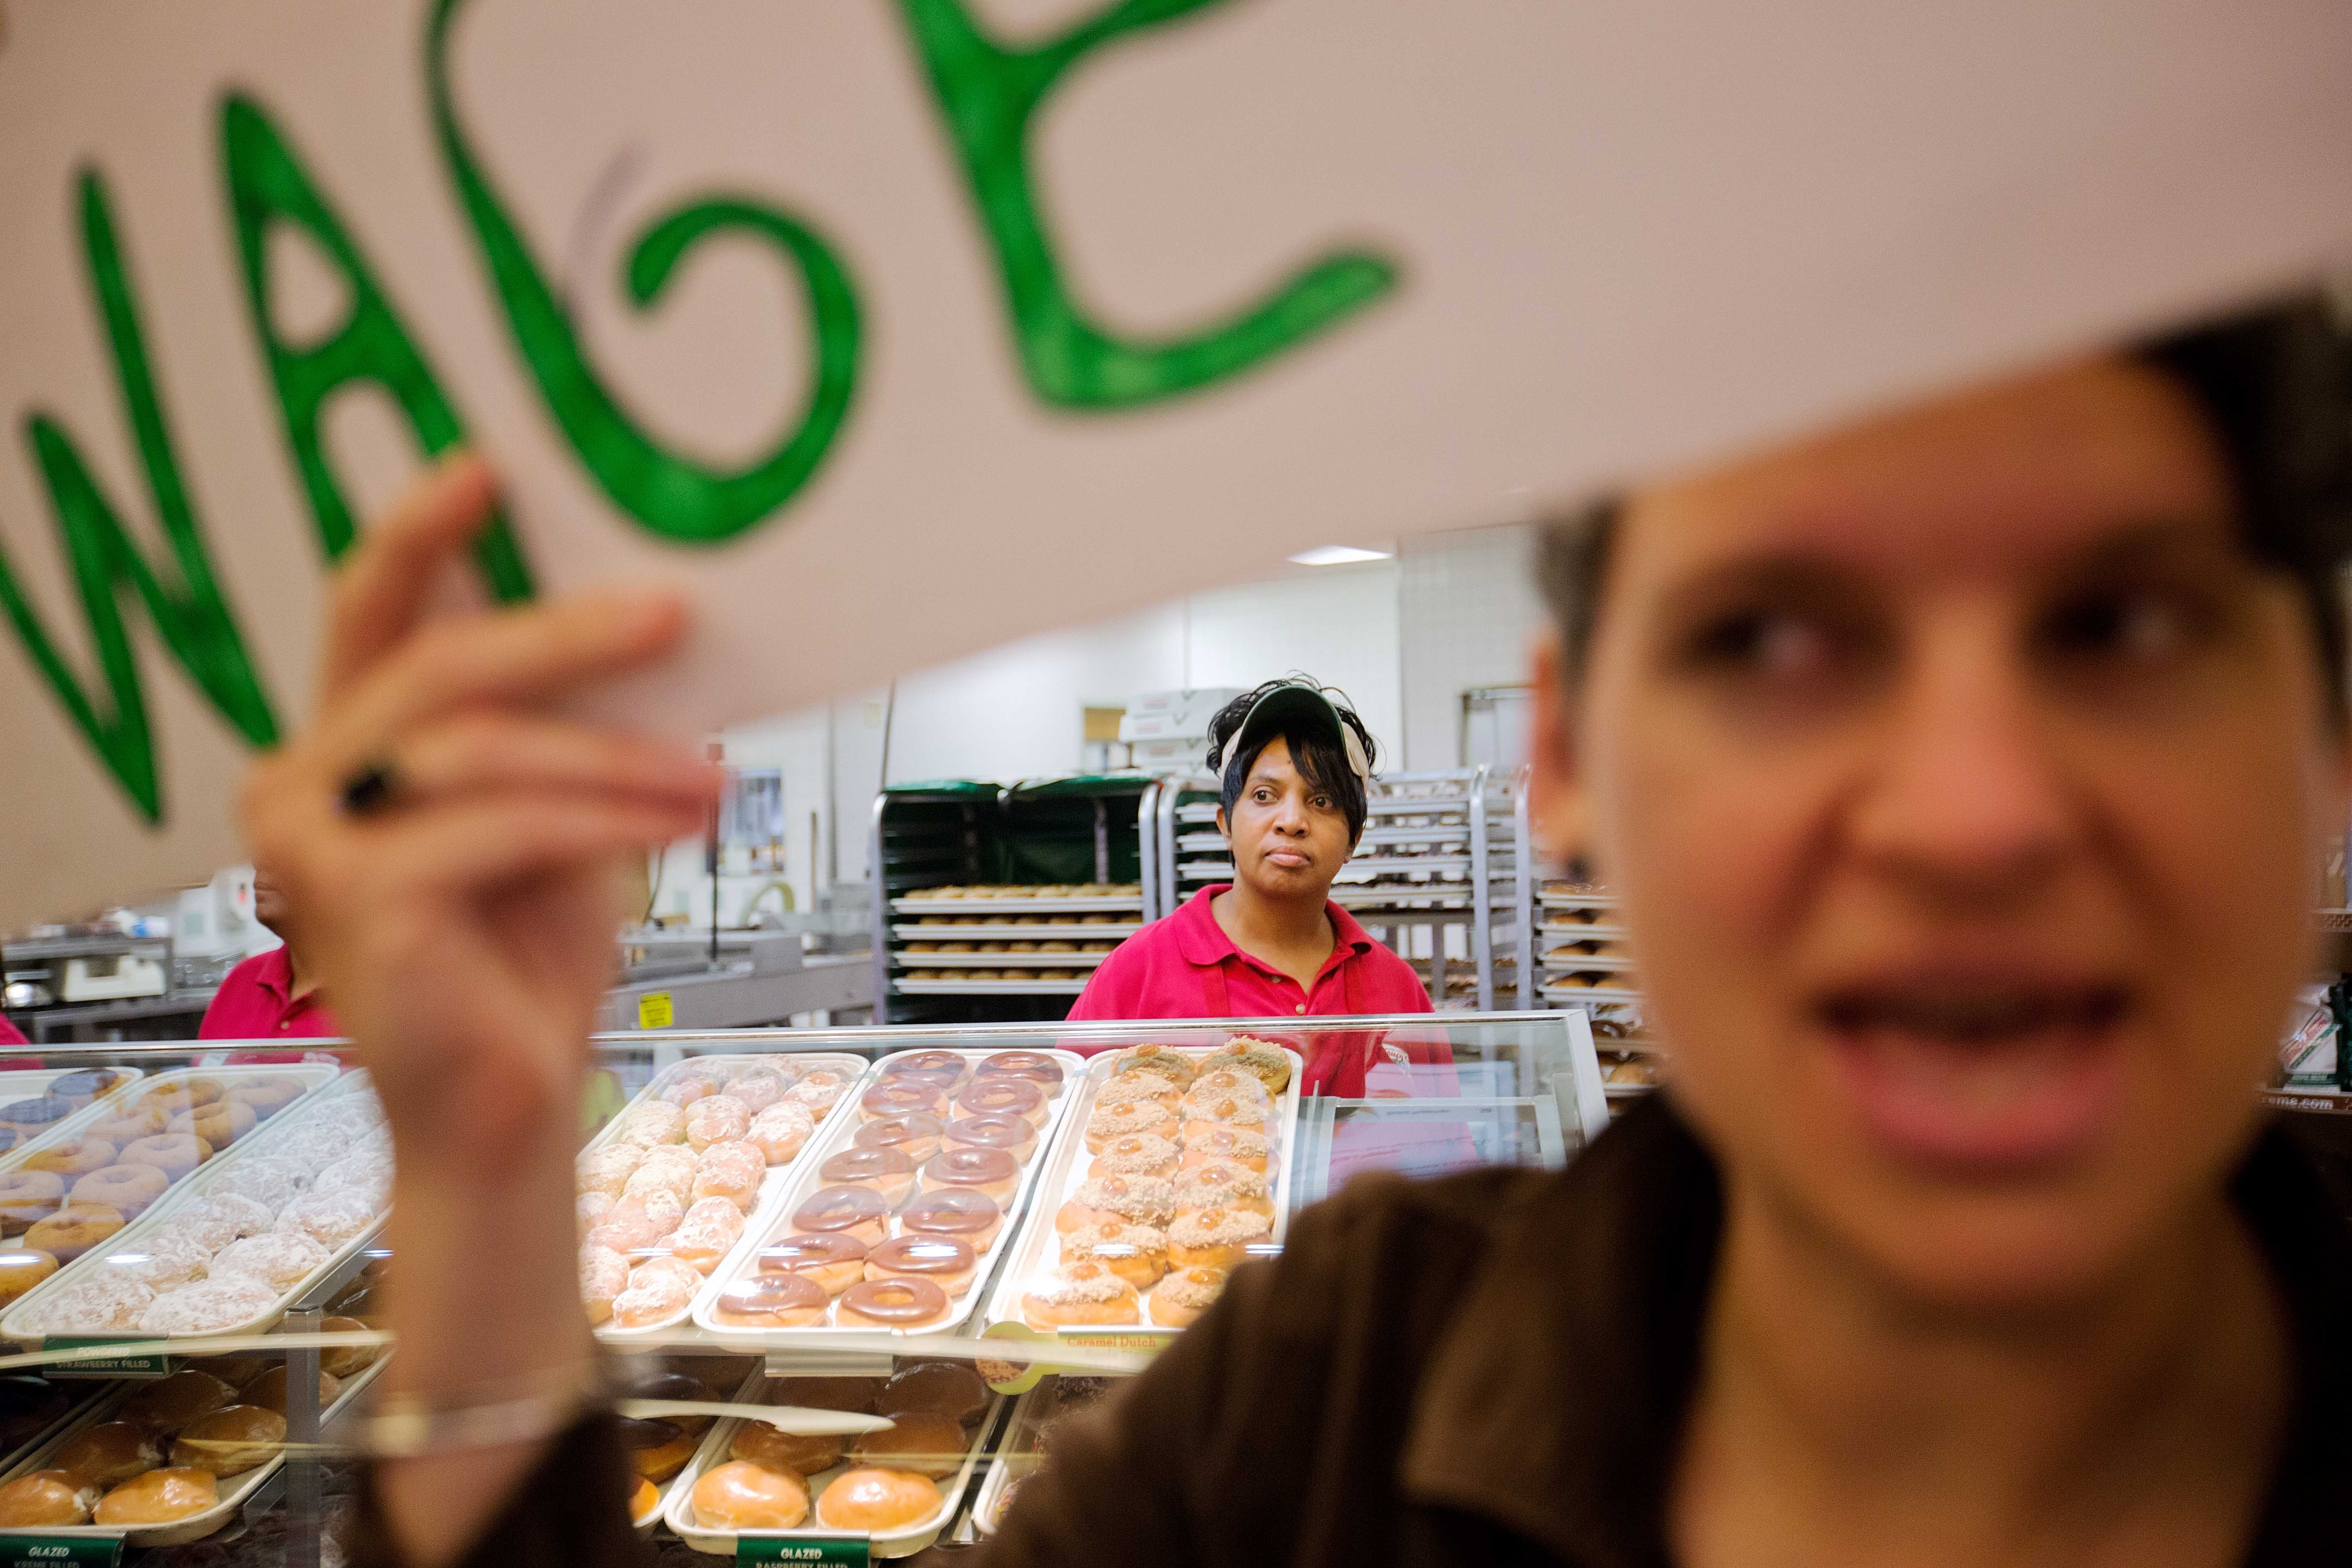 <b>Atlanta:</b> Krispy Kreme employee Beverly Ford, rear, looks on as demonstrators enter the store during a protest on May 15, 2014.